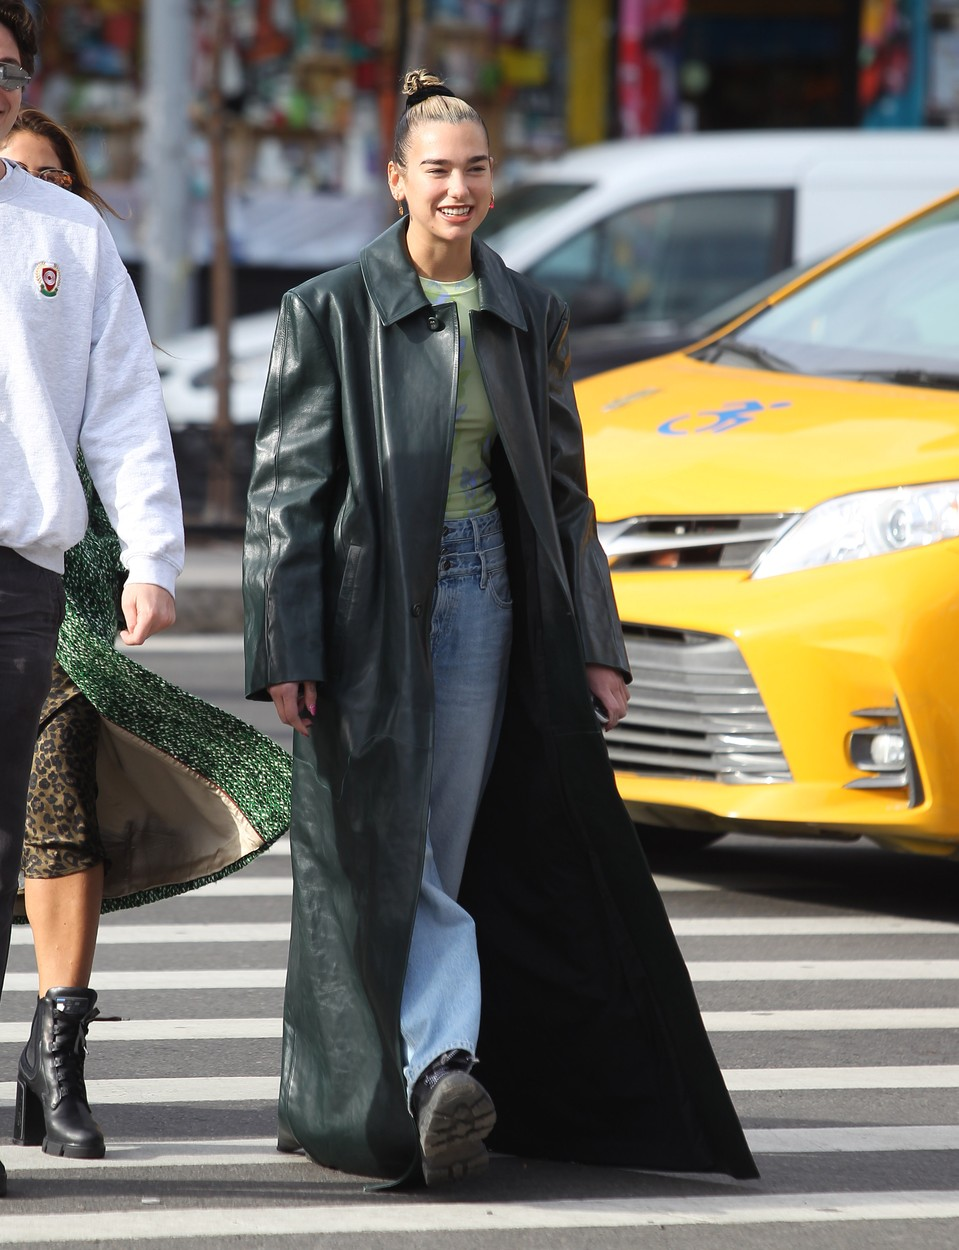 01/11/2020 Dua Lipa channels The Matrix with a long black leather trench coat in New York City. The 24 year old English singer, songwriter strolled the street with an entourage wearing high waisted denim jeans paired with a lime green top and black combat boots., Image: 492200154, License: Rights-managed, Restrictions: NO usage without agreed price and terms. Please contact sales@theimagedirect.com, Model Release: no, Credit line: TheImageDirect.com / The Image Direct / Profimedia